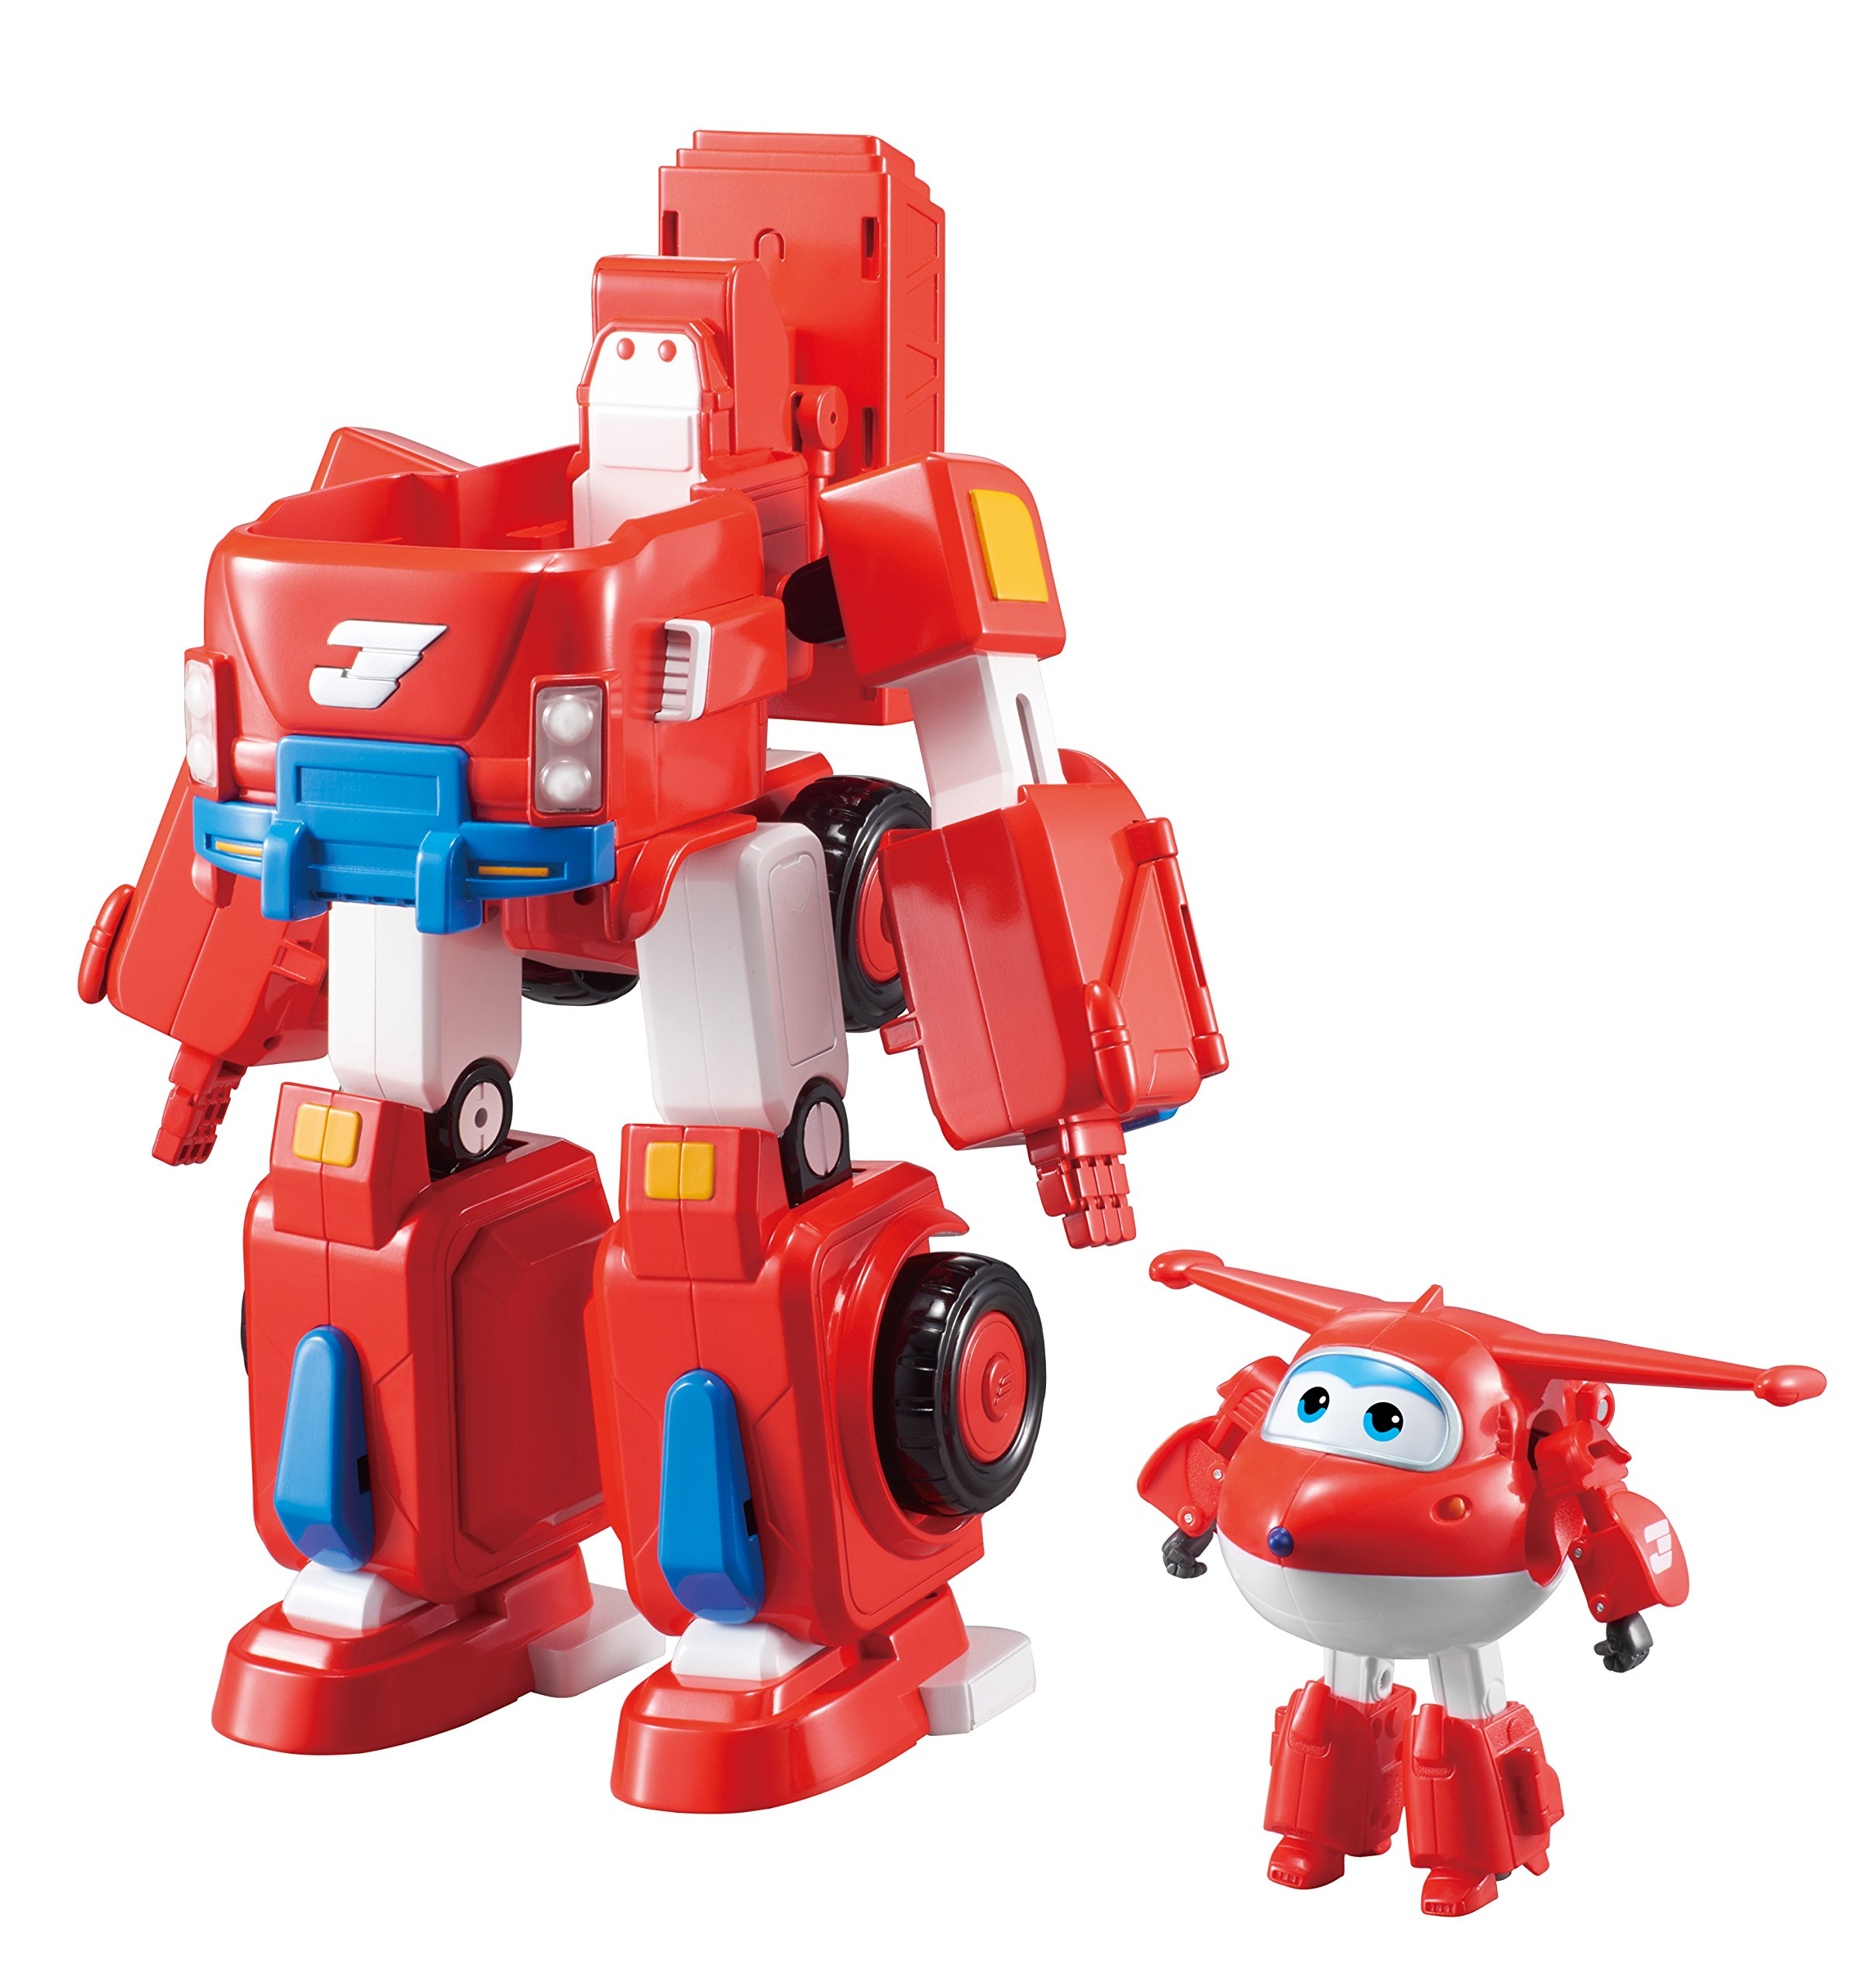 Super Wings - Jett's Super Robot Suit Large Transforming Toy Vehicle | Includes Jett | 5'' Scale by Super Wings - (Image #2)